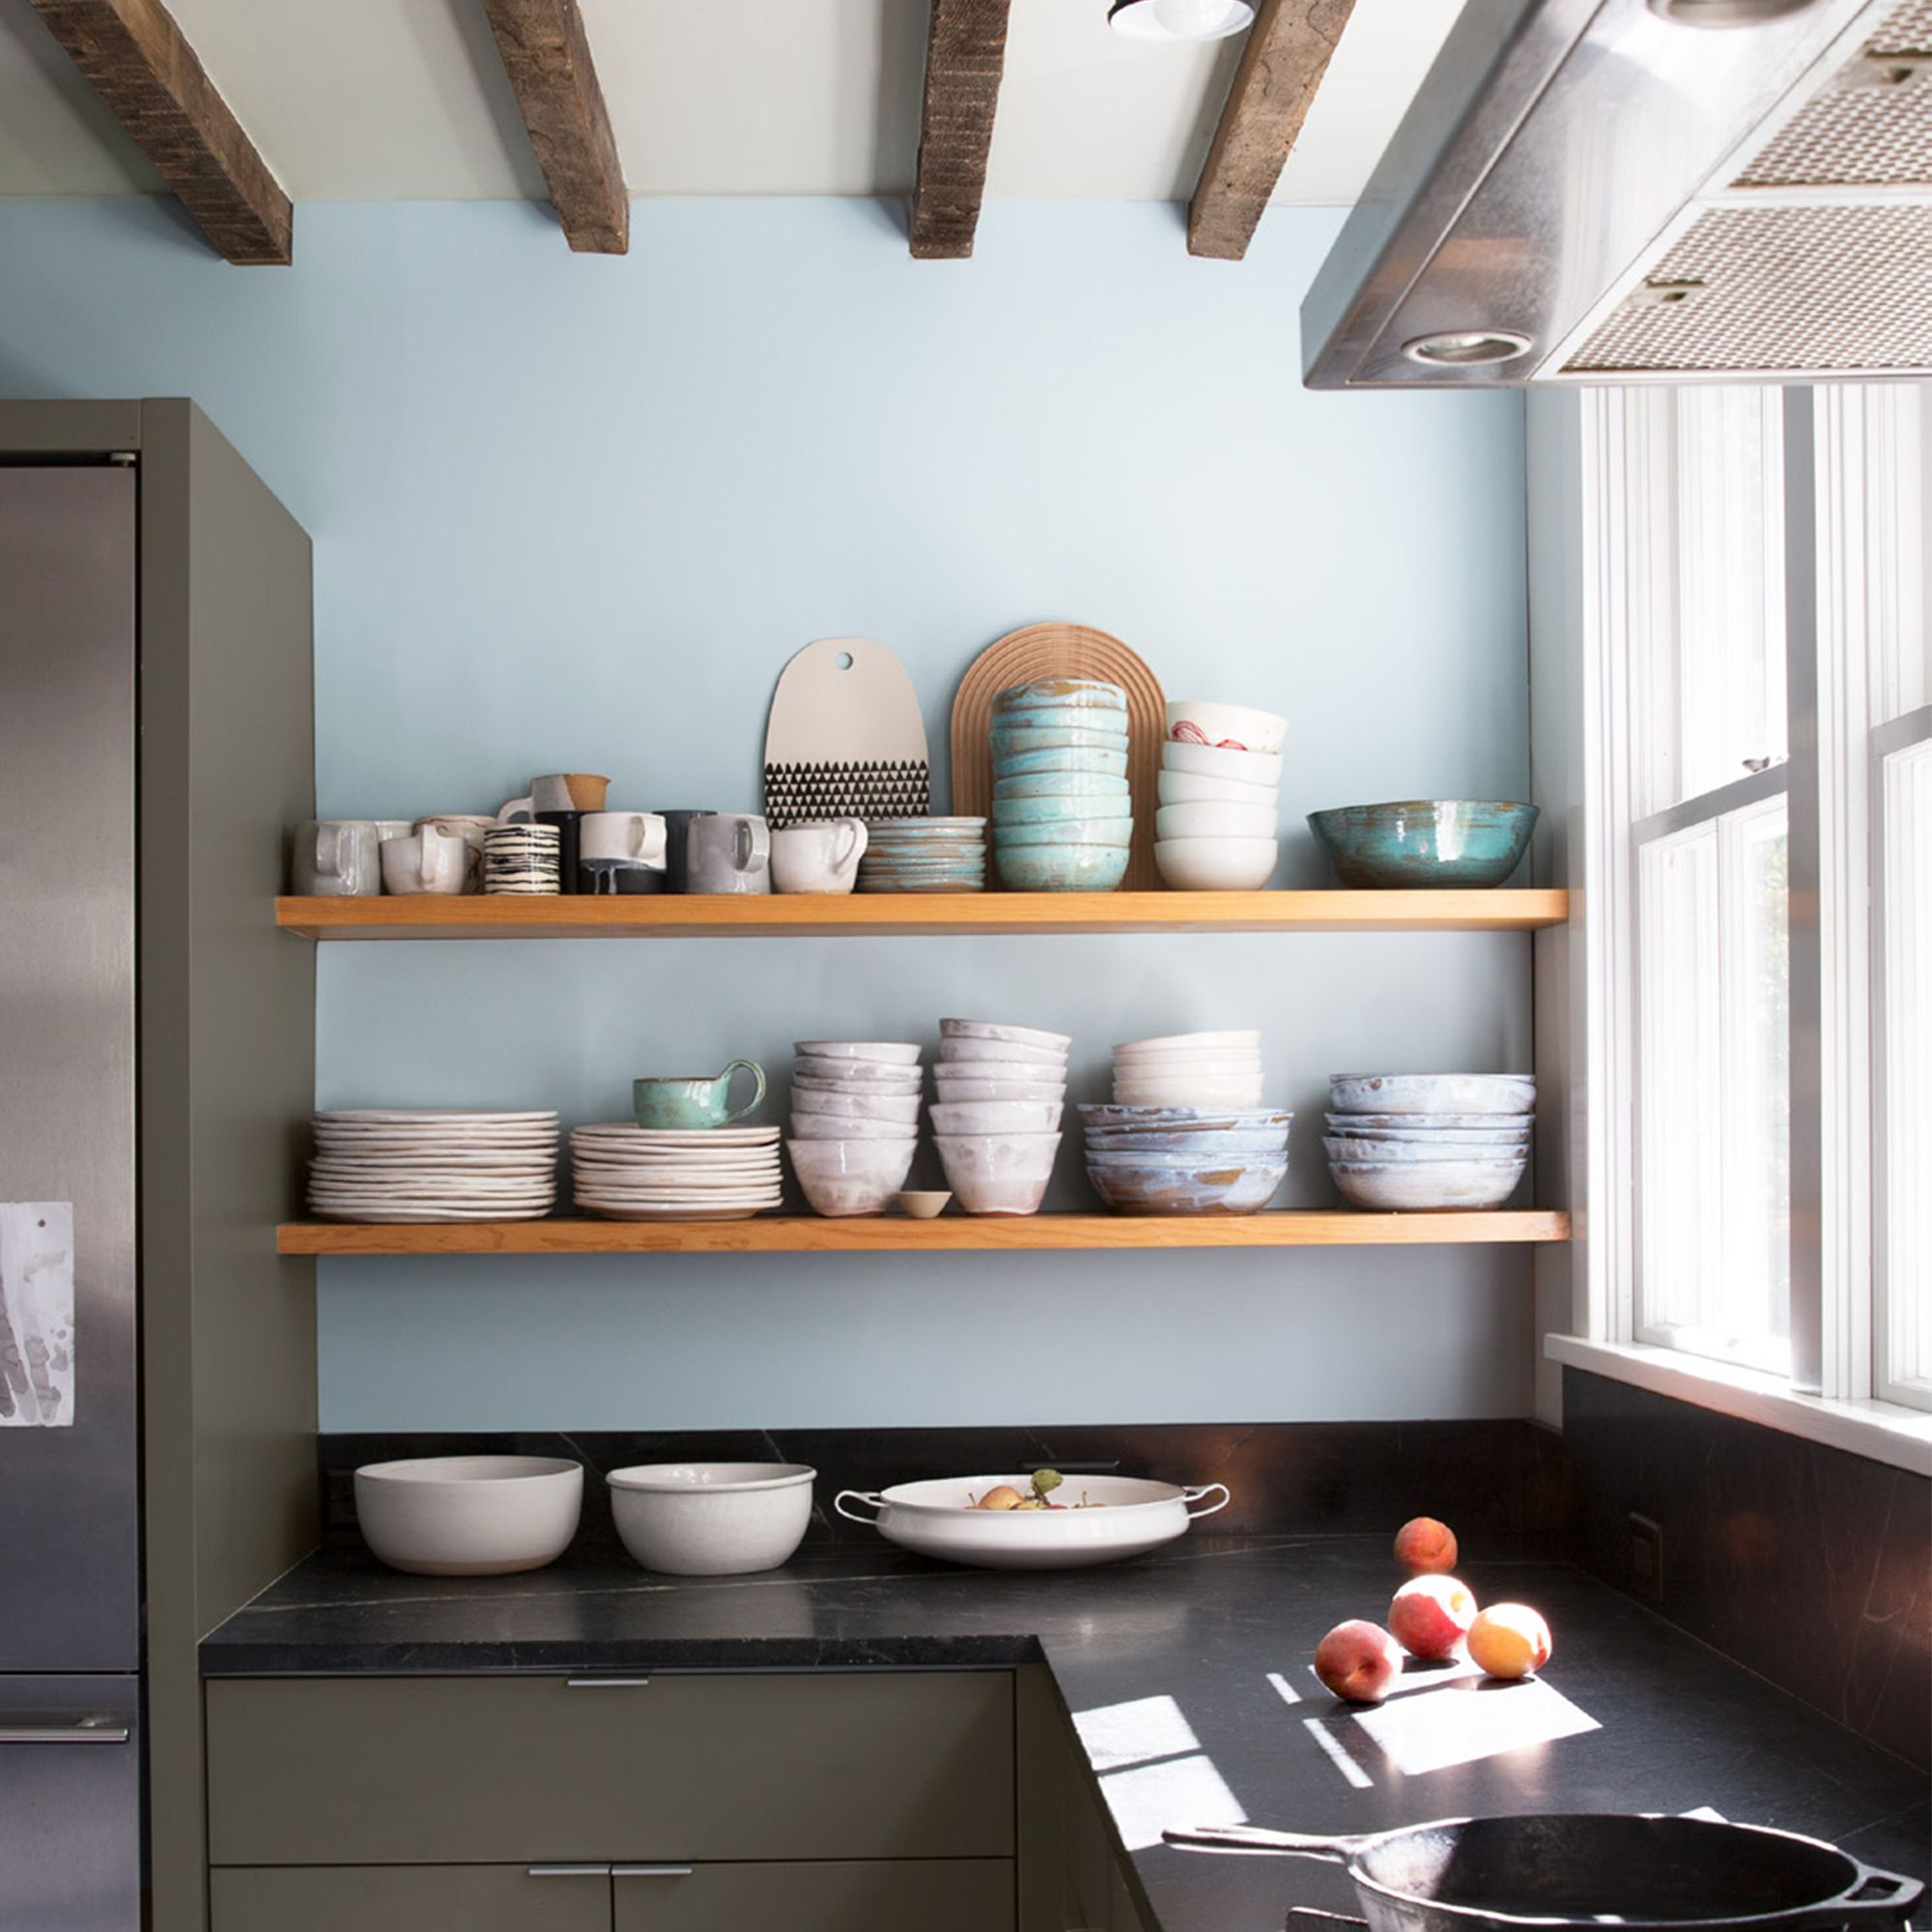 Kitchen with bowls